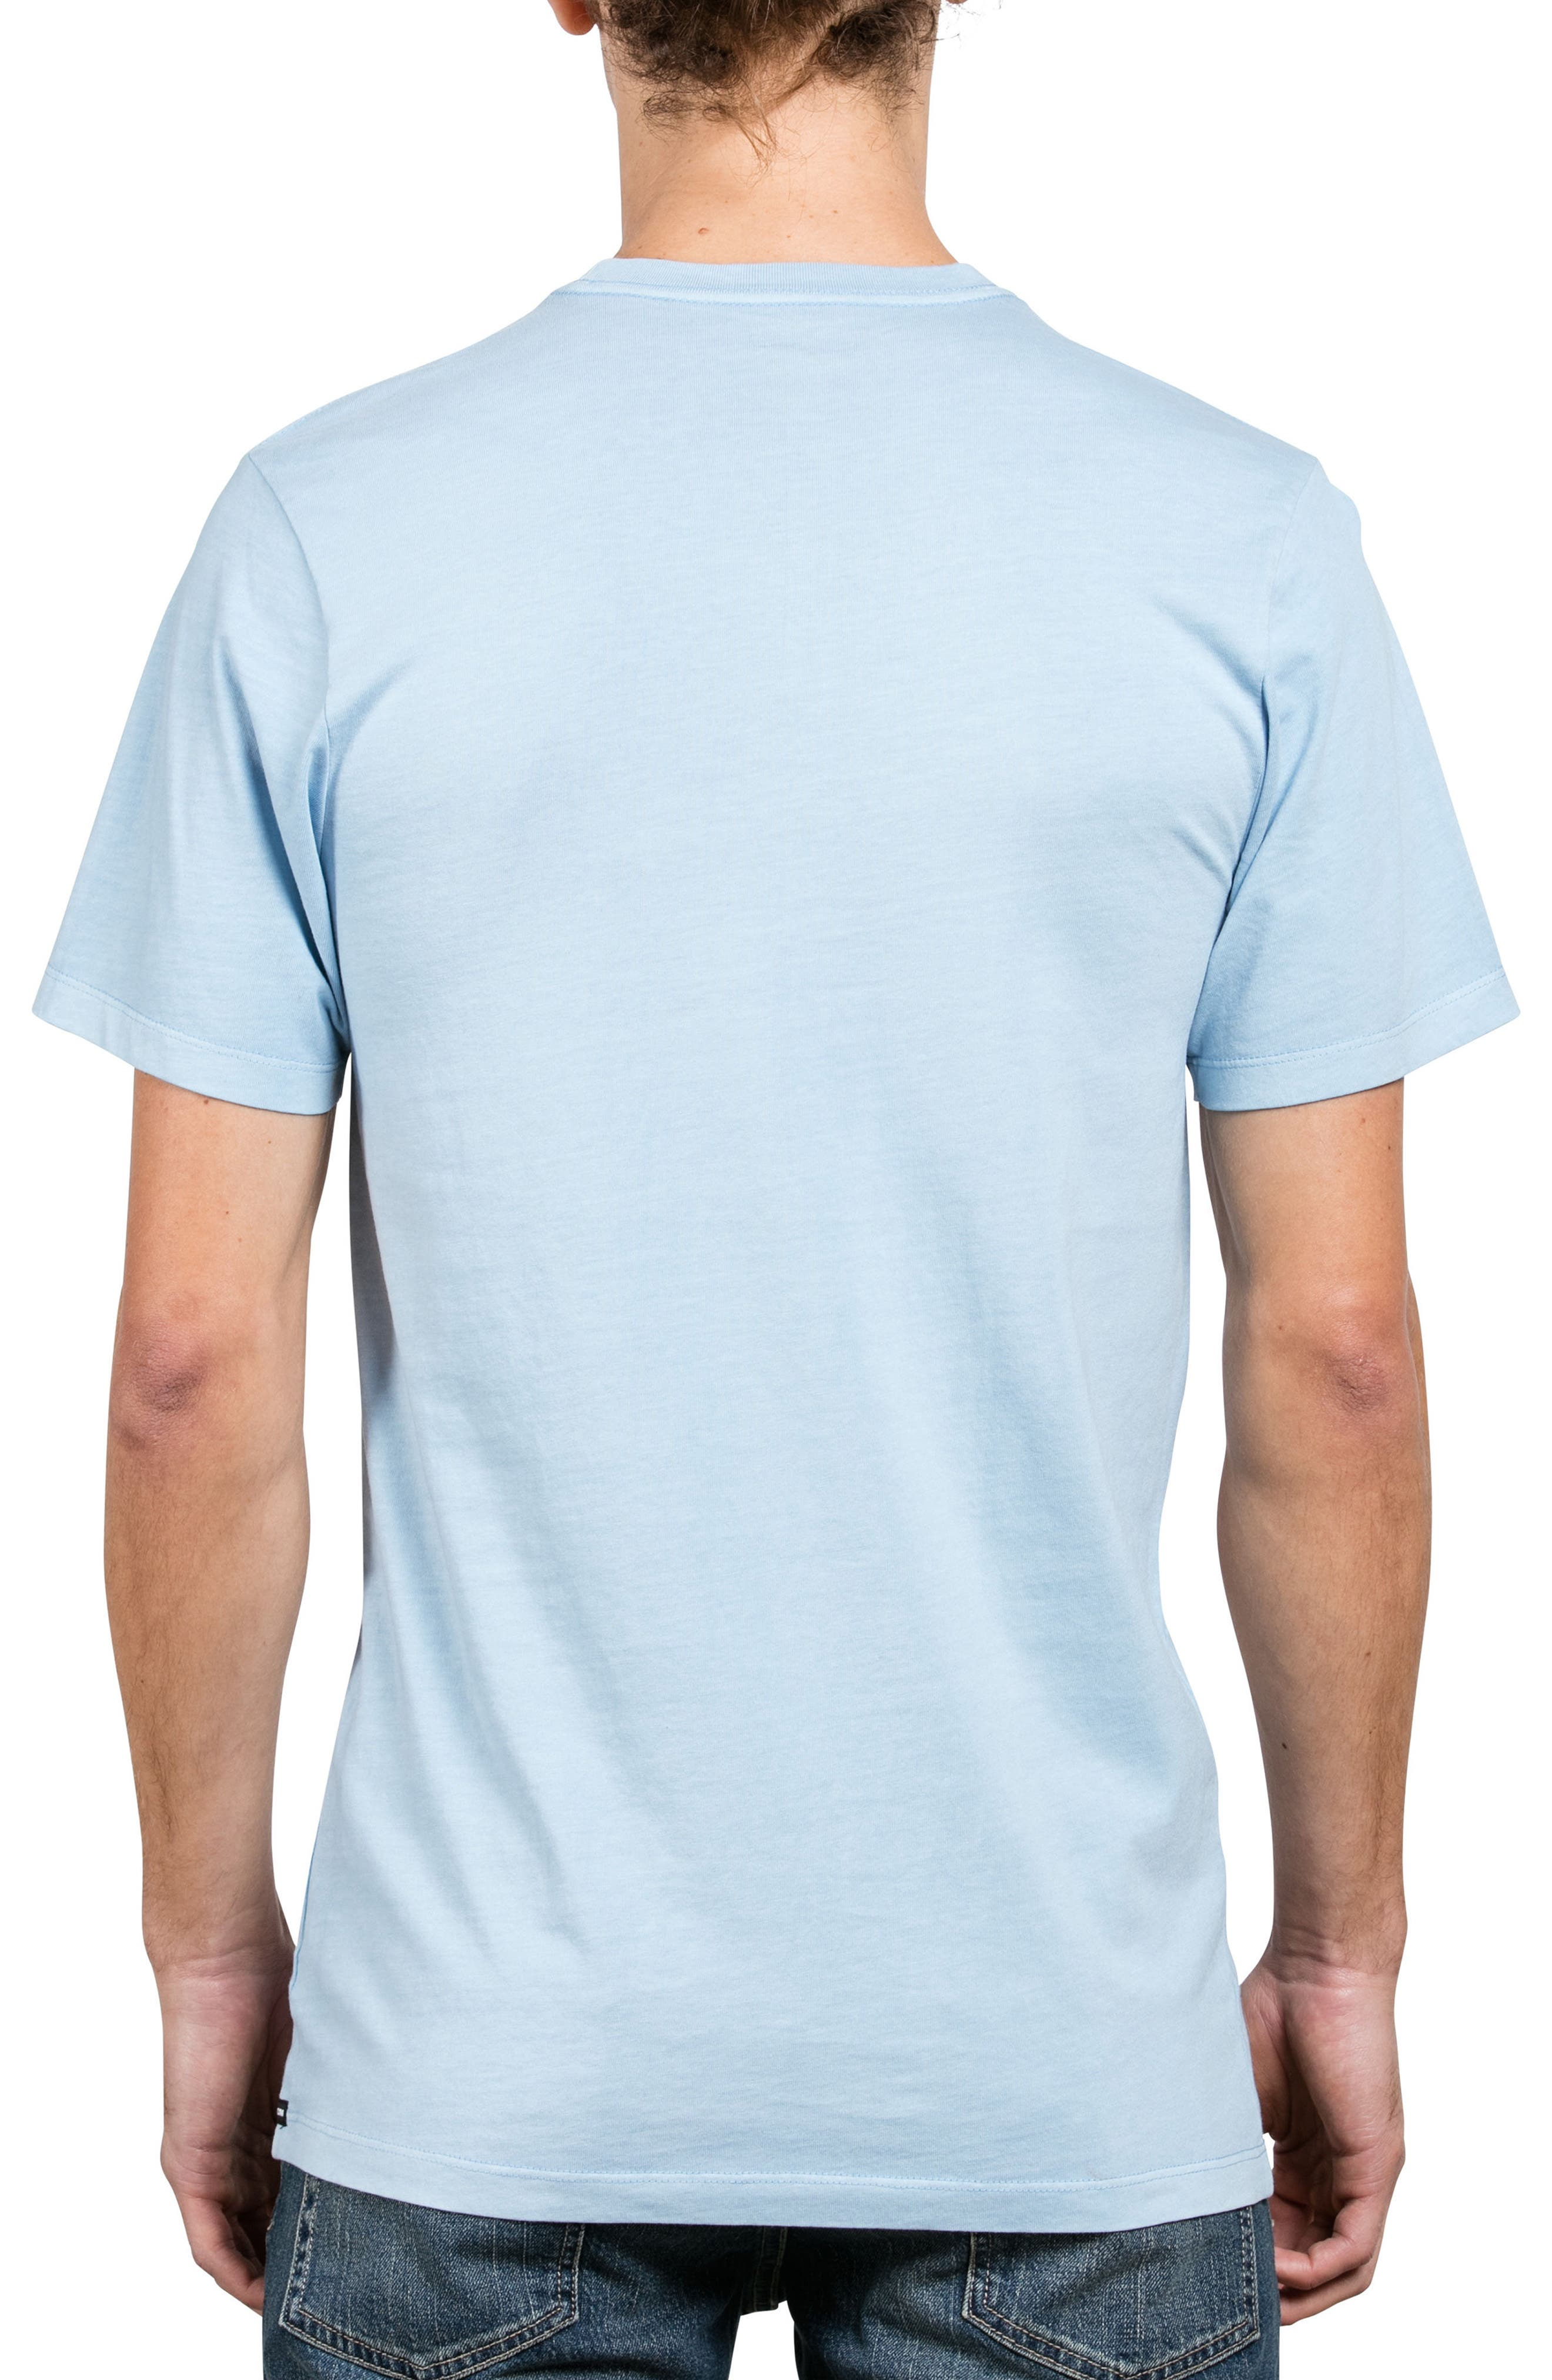 Toasted Graphic T-Shirt,                             Alternate thumbnail 2, color,                             457